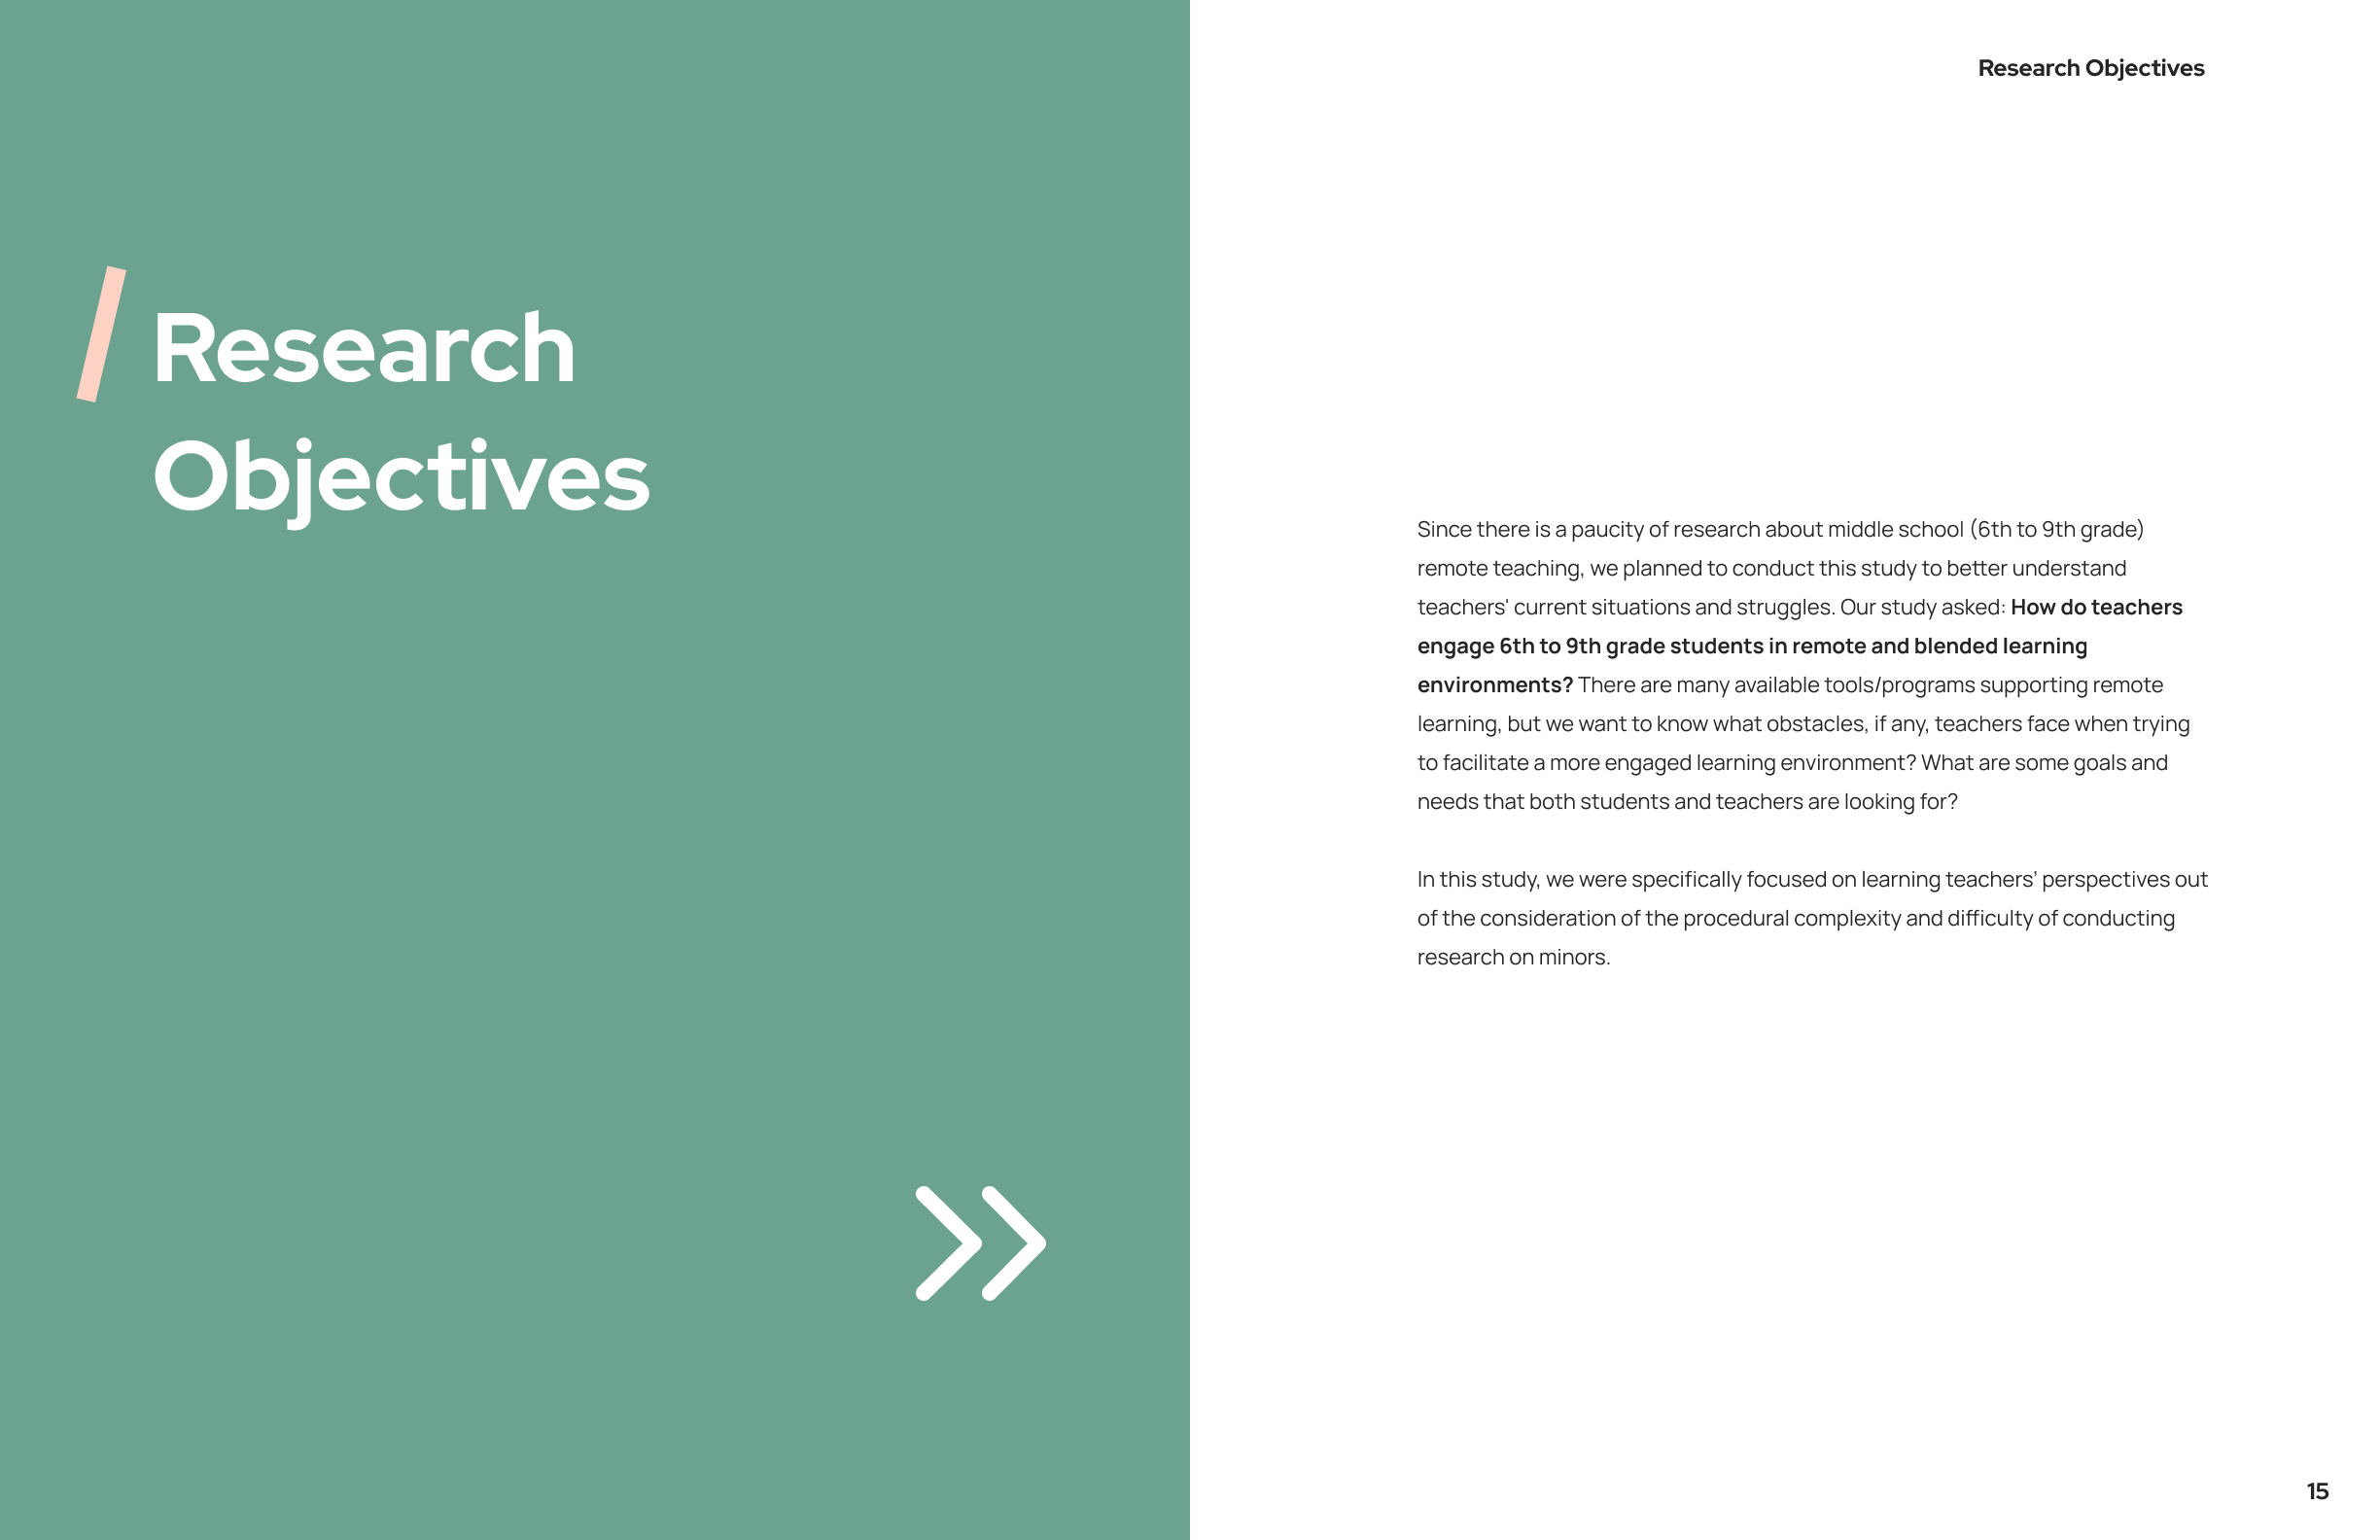 Research-Objectives-